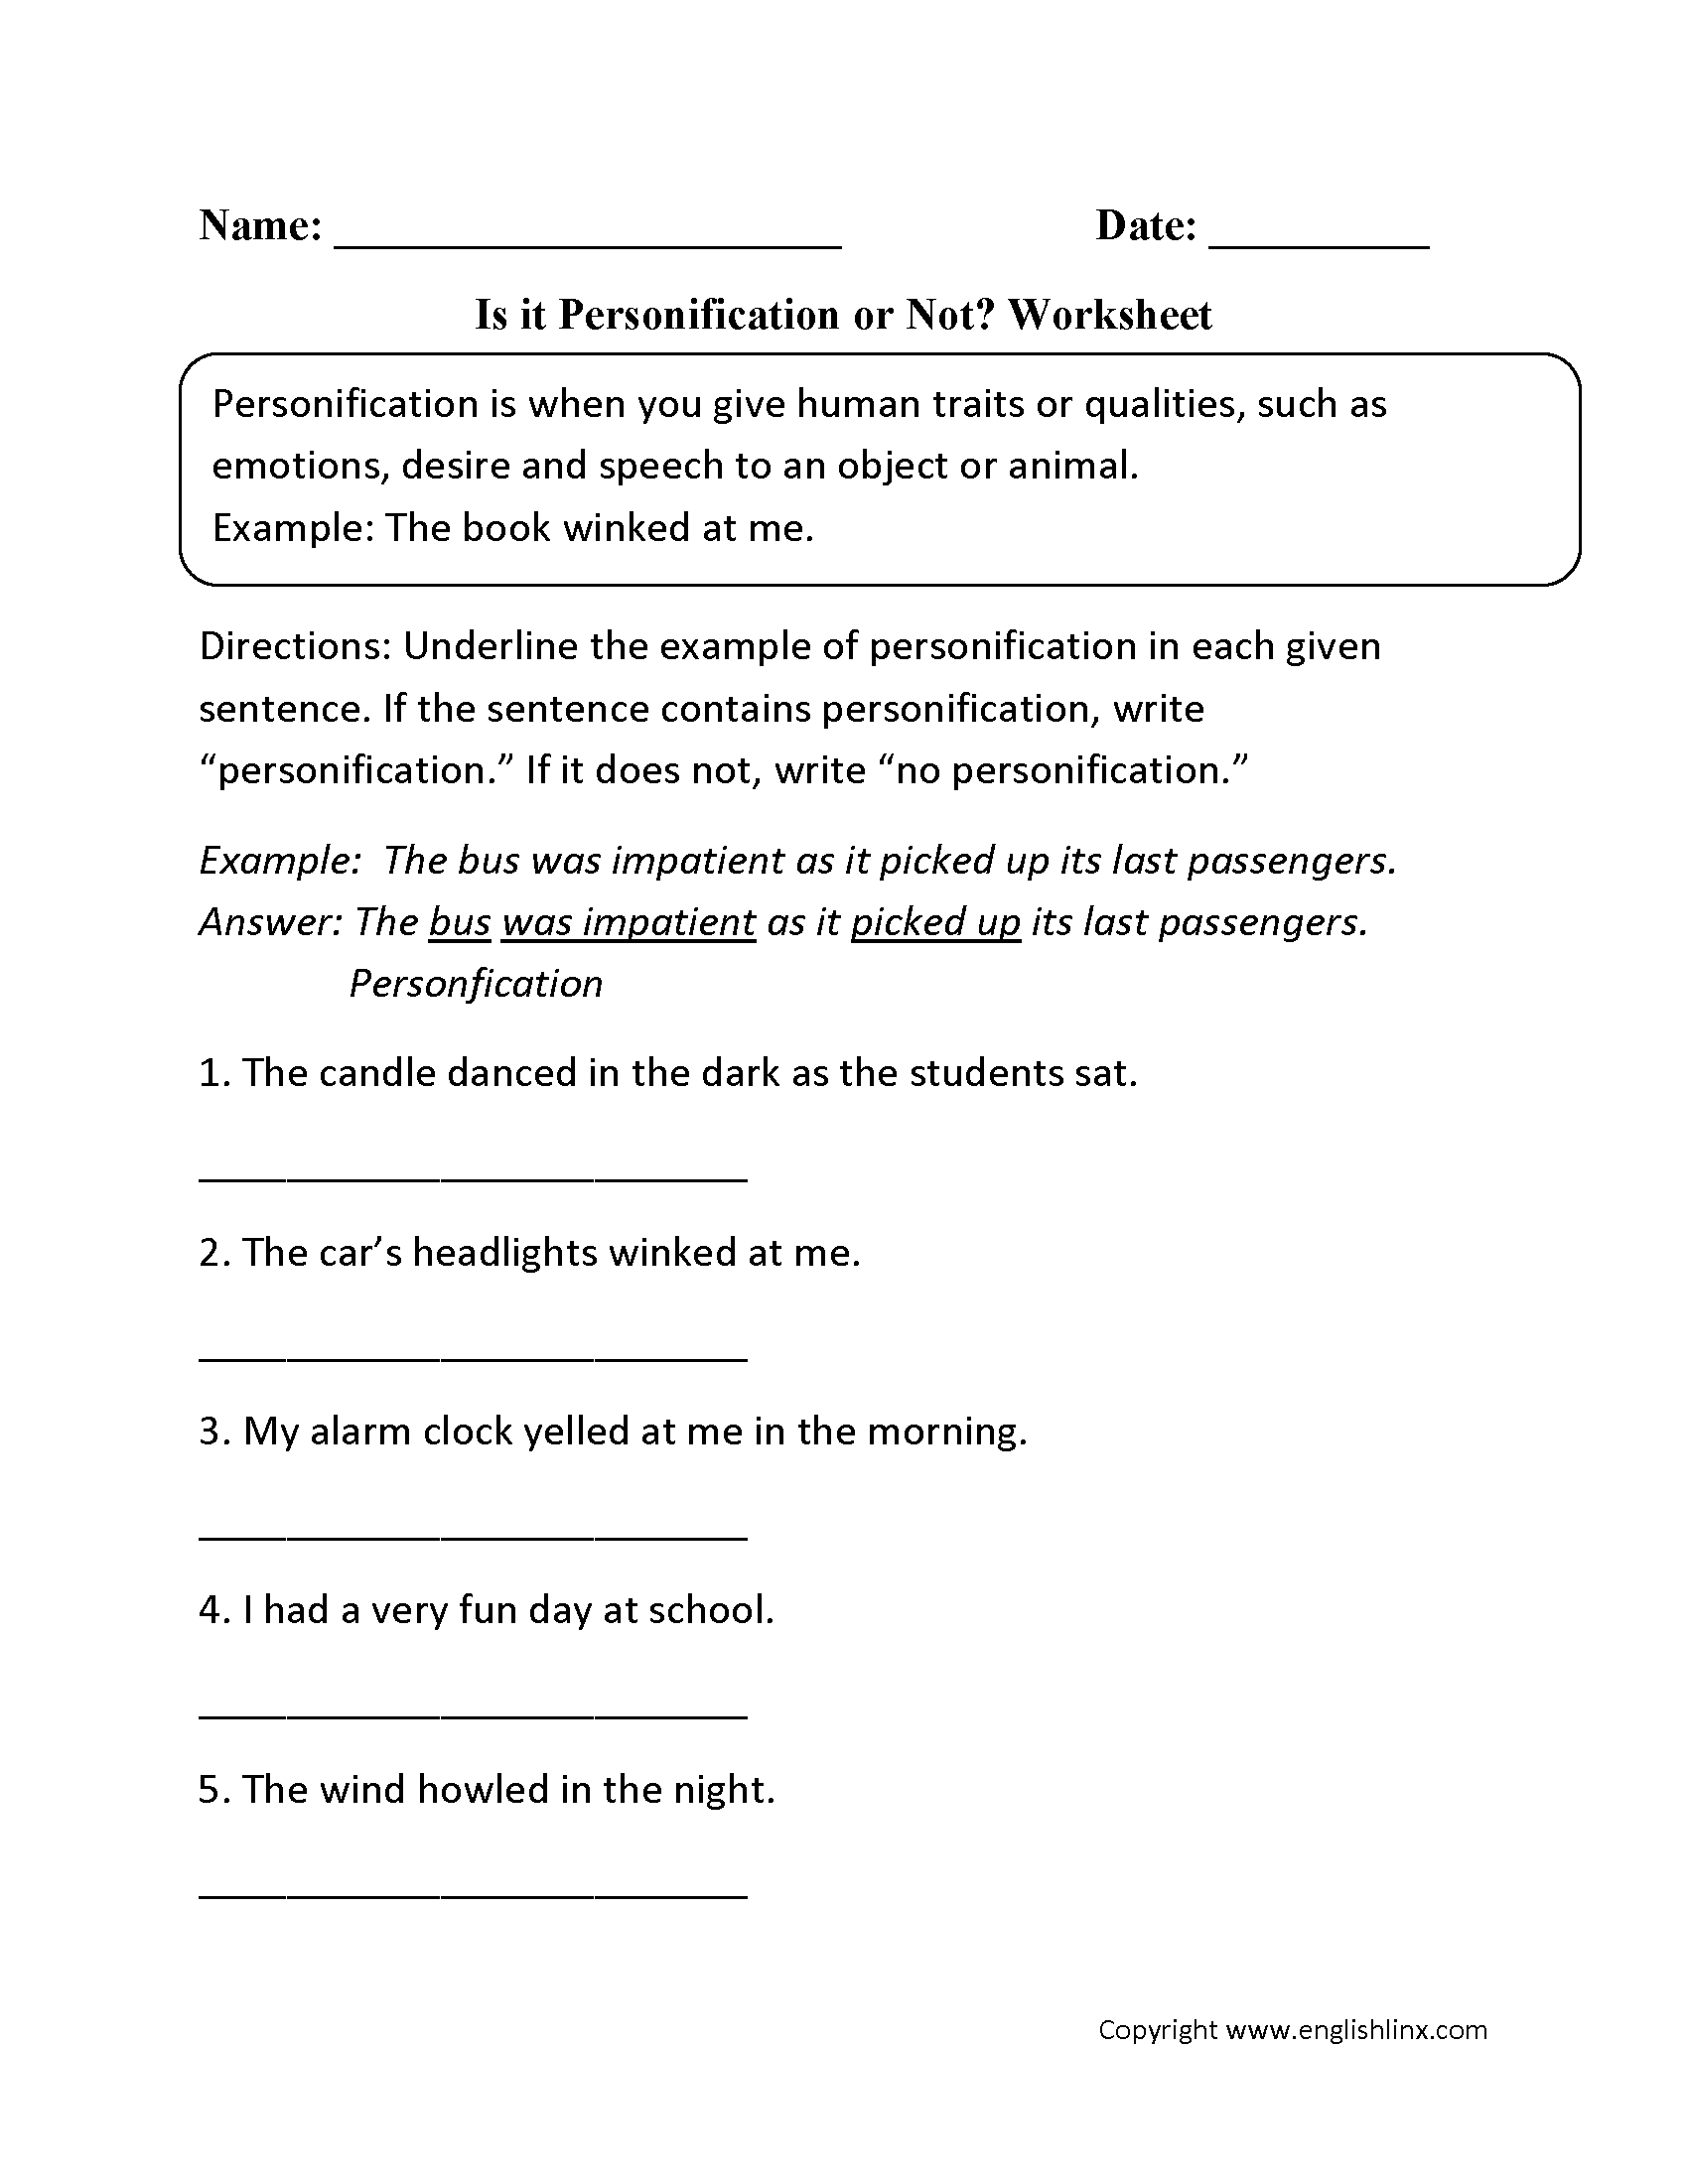 figurative language worksheets personification worksheets is it personification or not worksheet